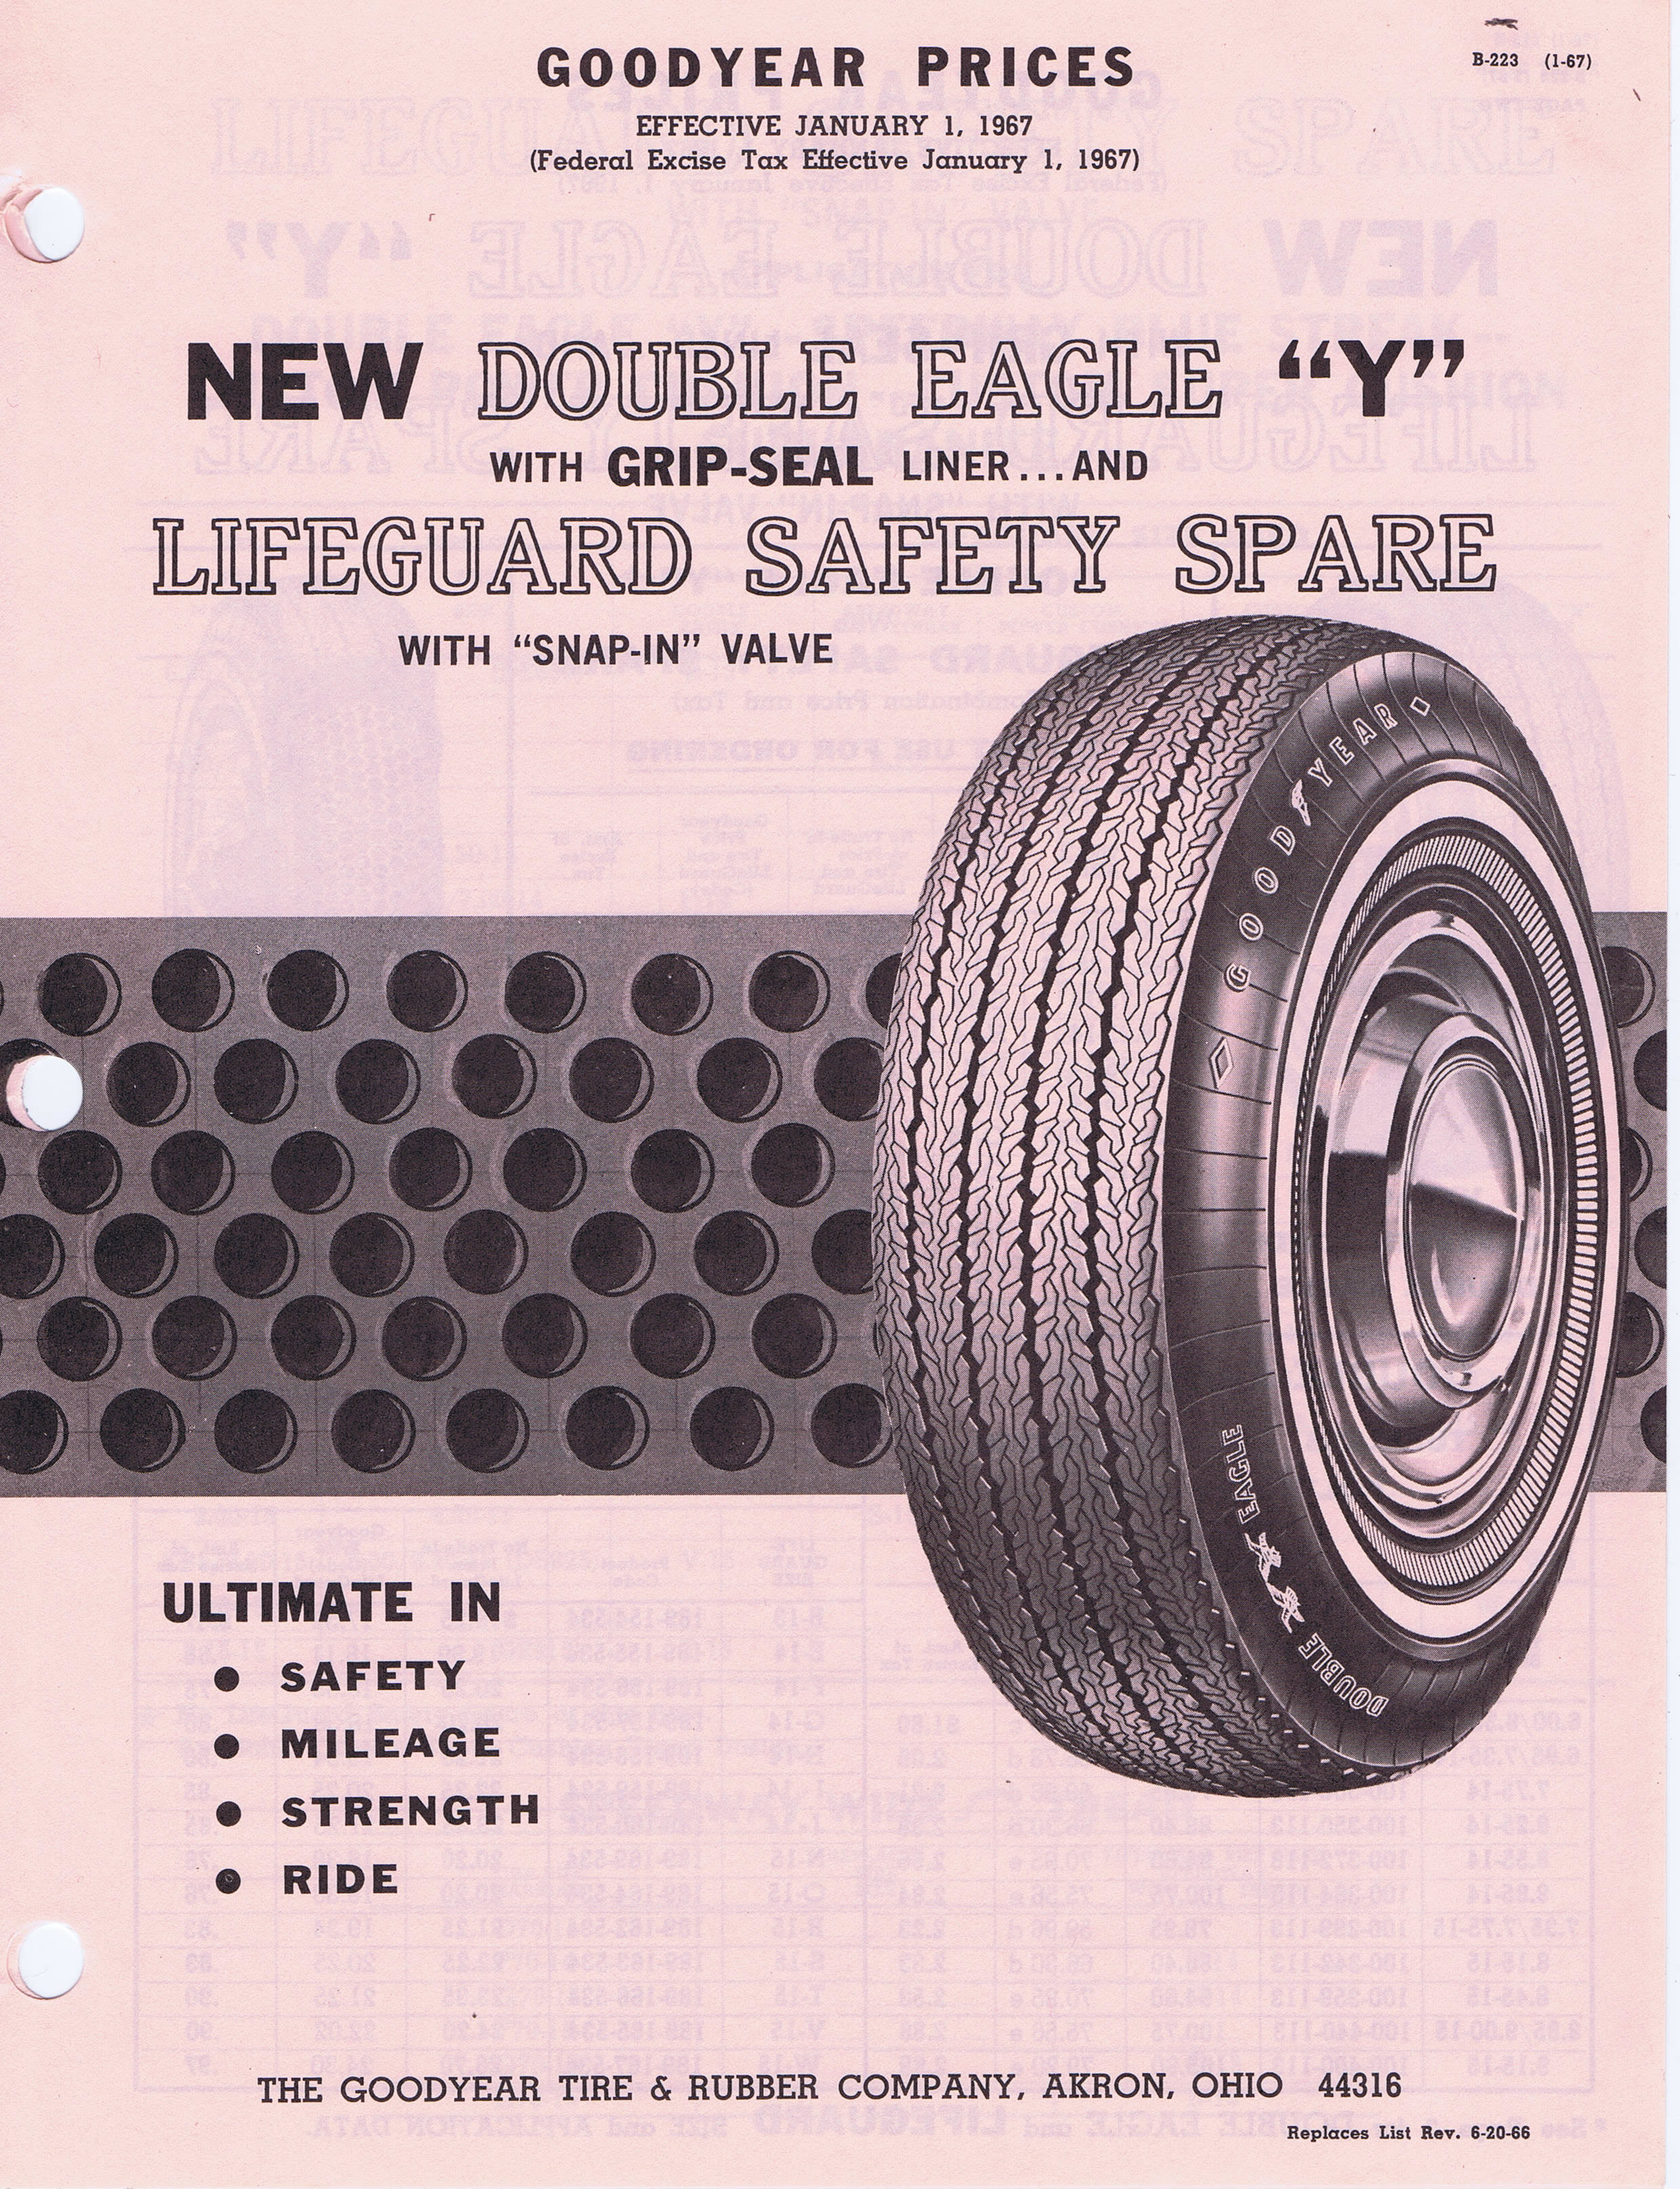 1967 Goodyear Double Eagle Prices / Goodyear_DoubleEagle ... Goodyear Tires